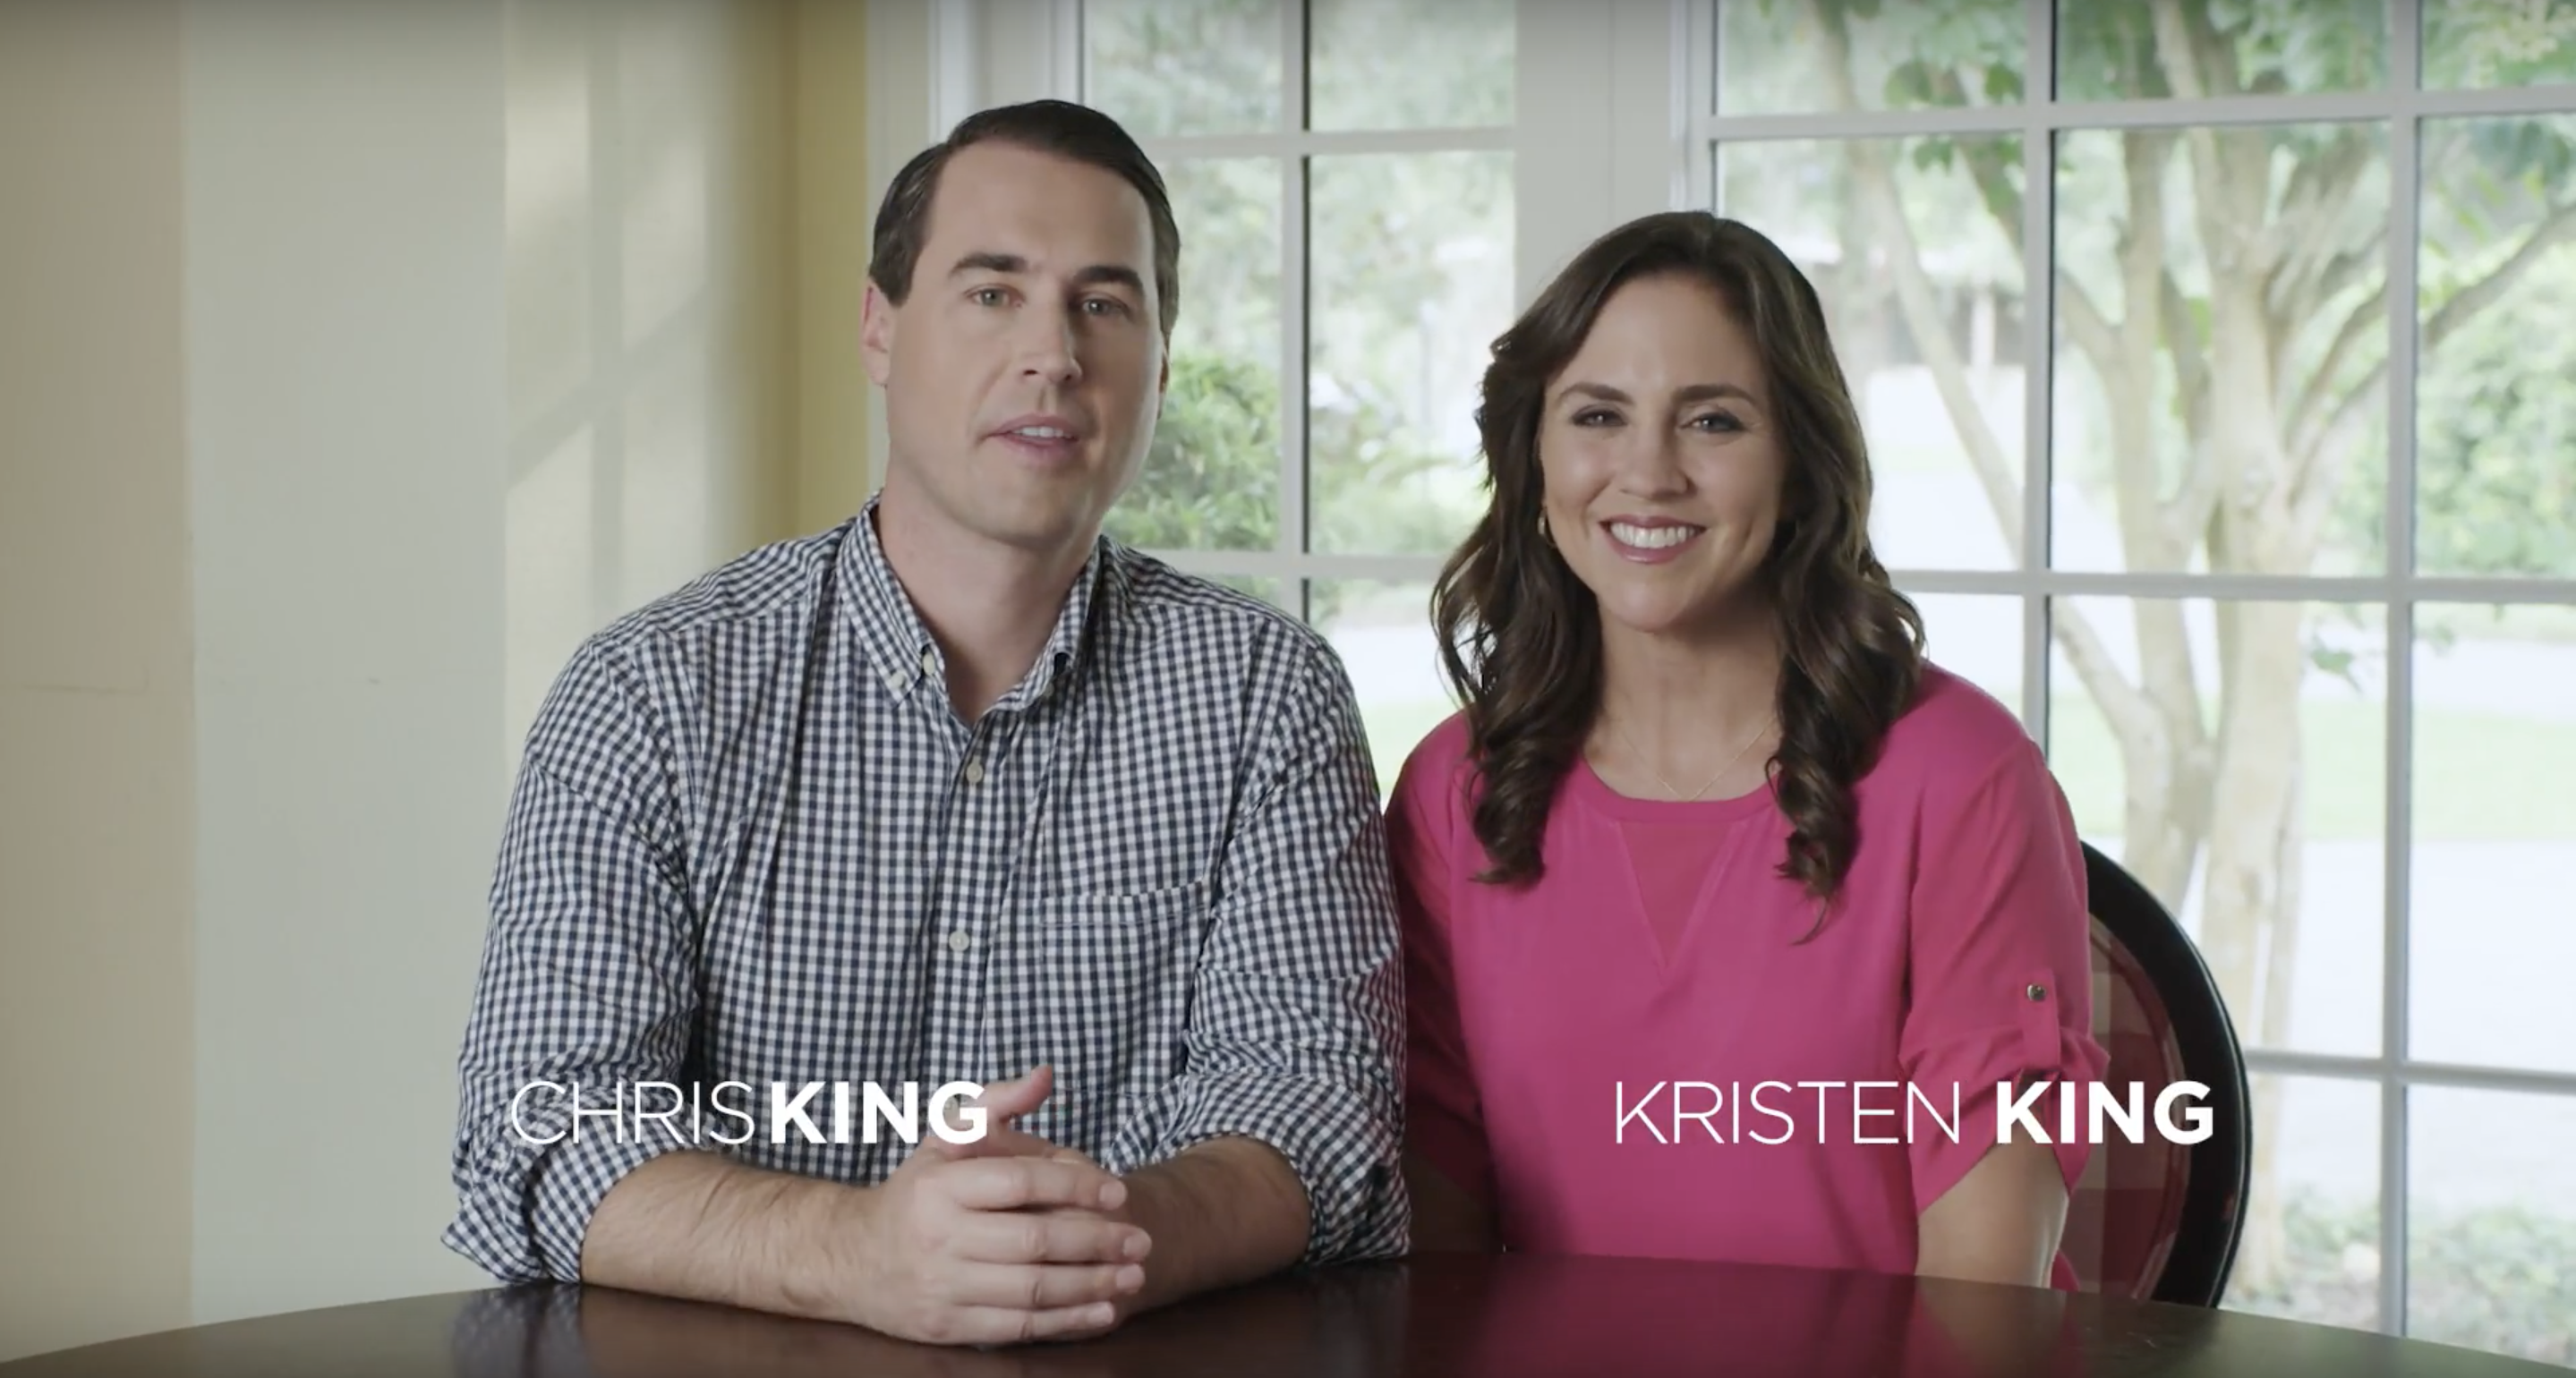 Chris King Releases new Advertisement With his Wife